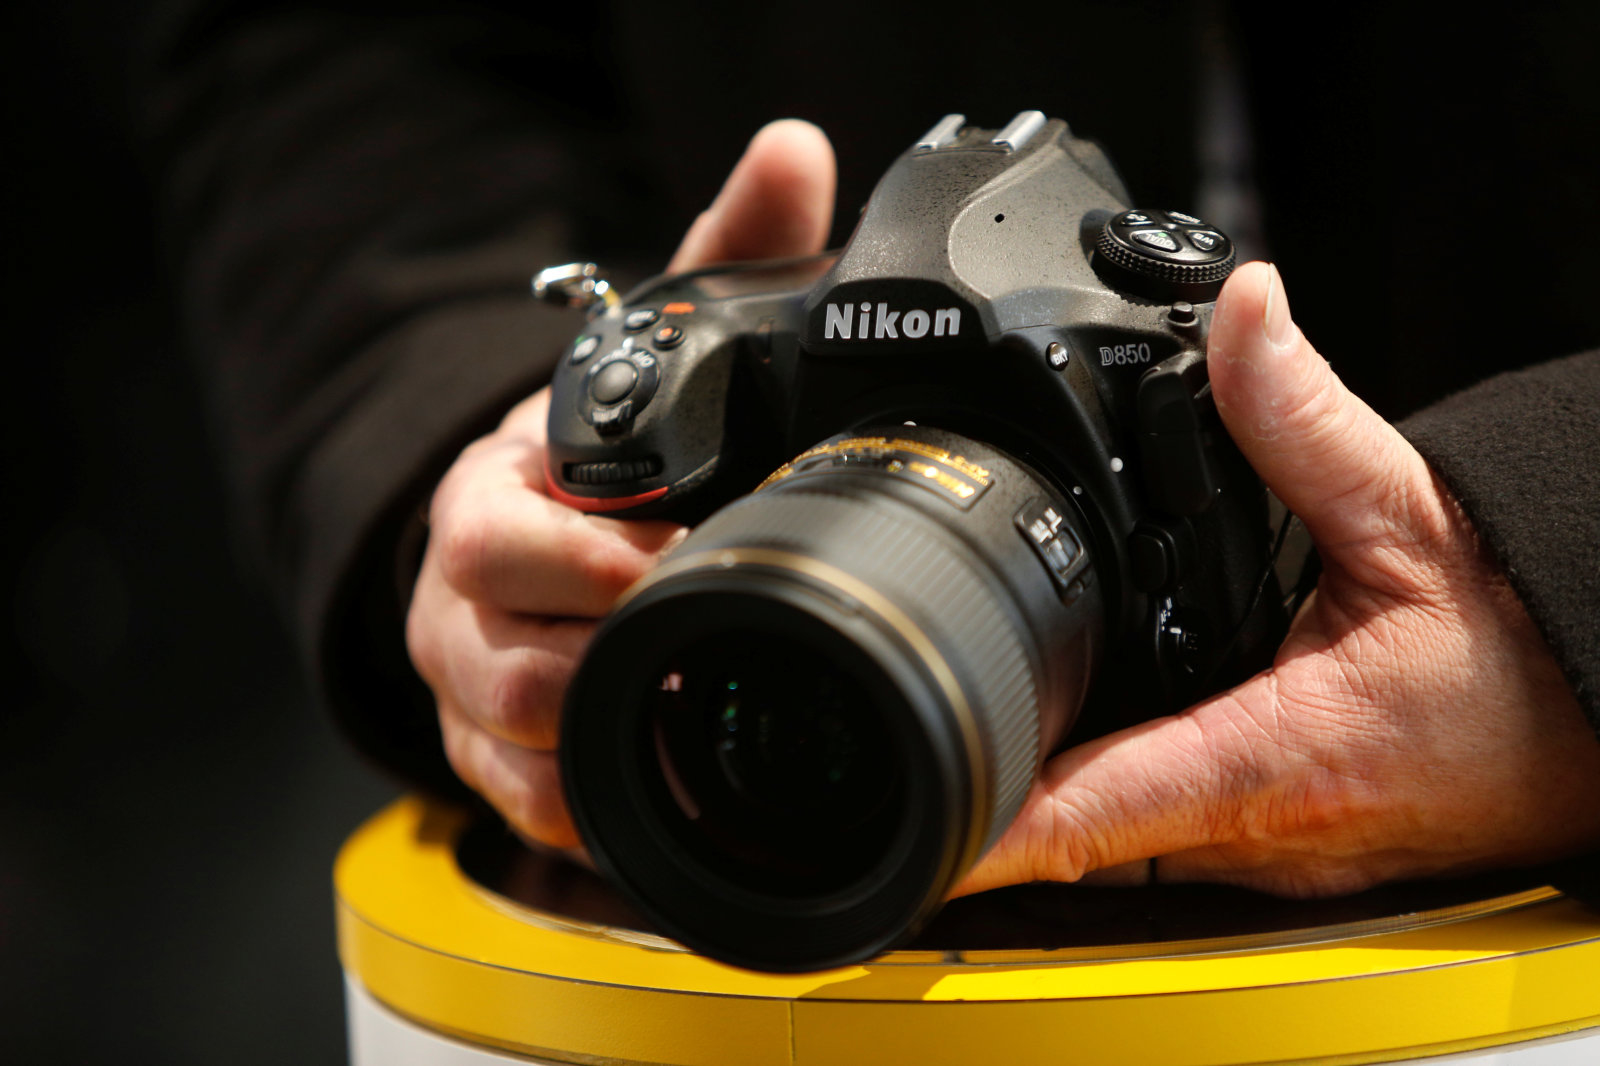 An attendee checks out the Nikon D850 digital camera during the 2018 CES in Las Vegas, Nevada, U.S. January 10, 2018. REUTERS/Steve Marcus